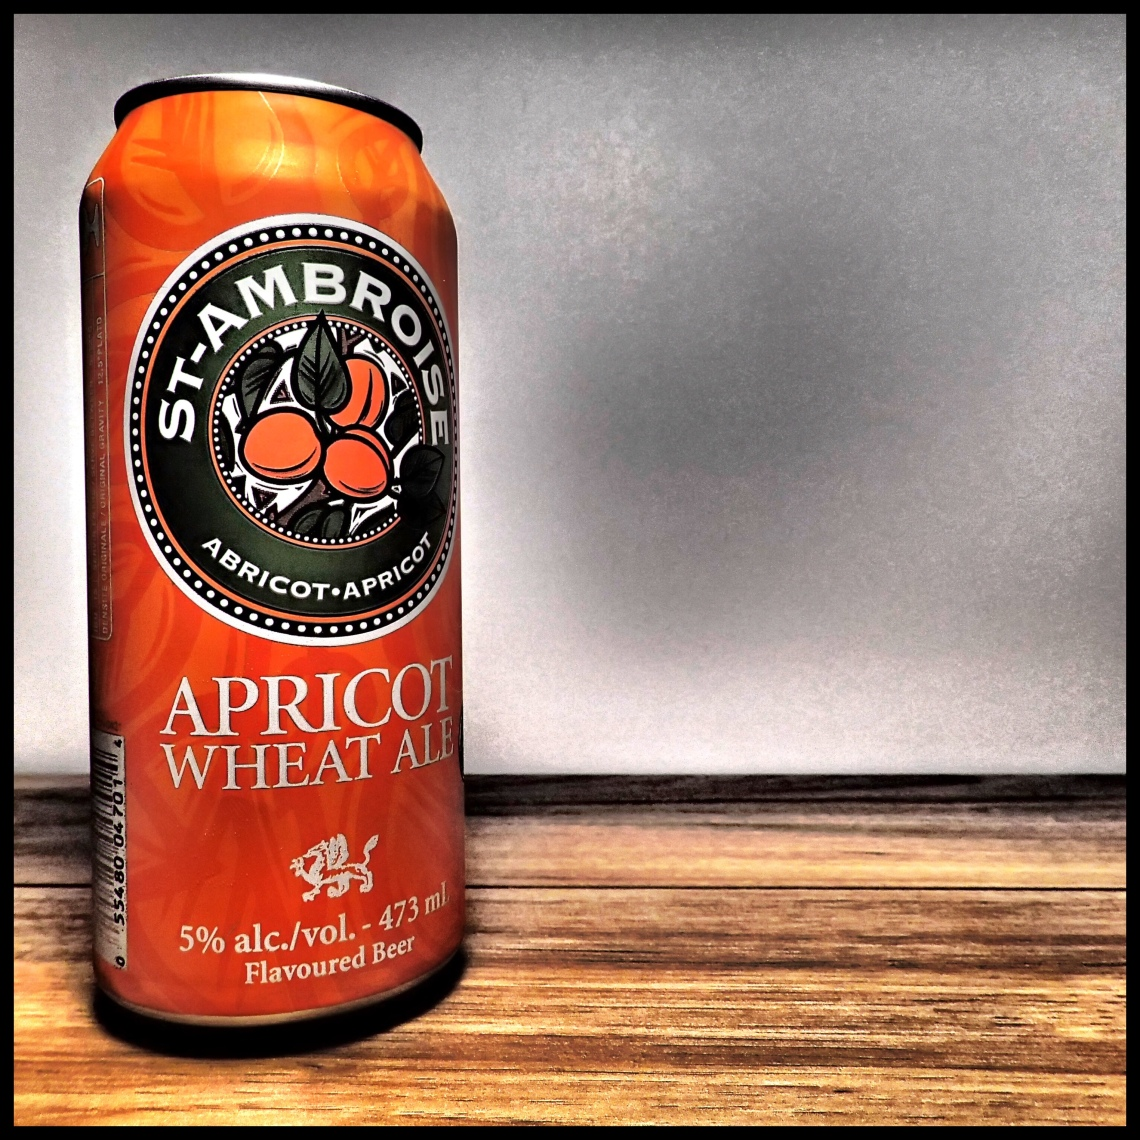 St-Ambroise Apricot Wheat Main